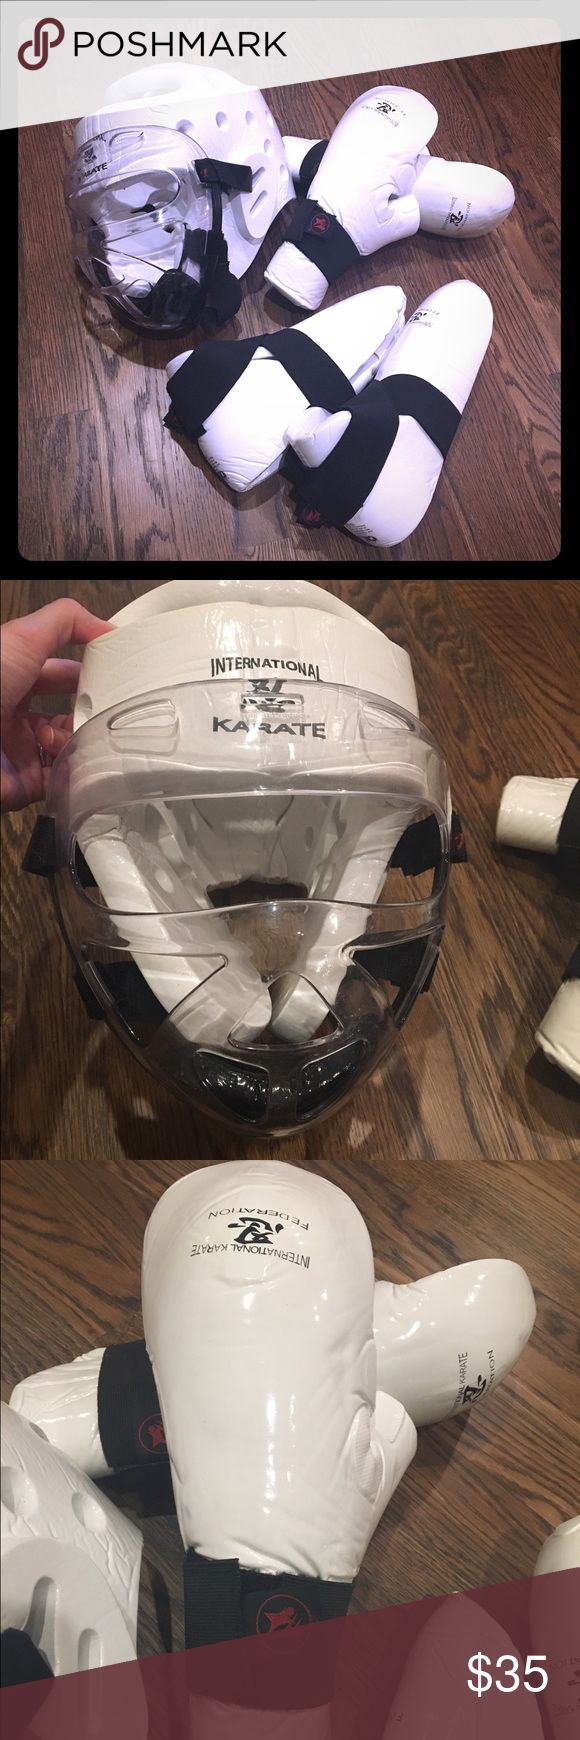 Karate Sparring Gear Karate sparring gear. White. Head piece with removable face shield, foot shields, and gloves. International Karate Federation. Adult size XL. Other